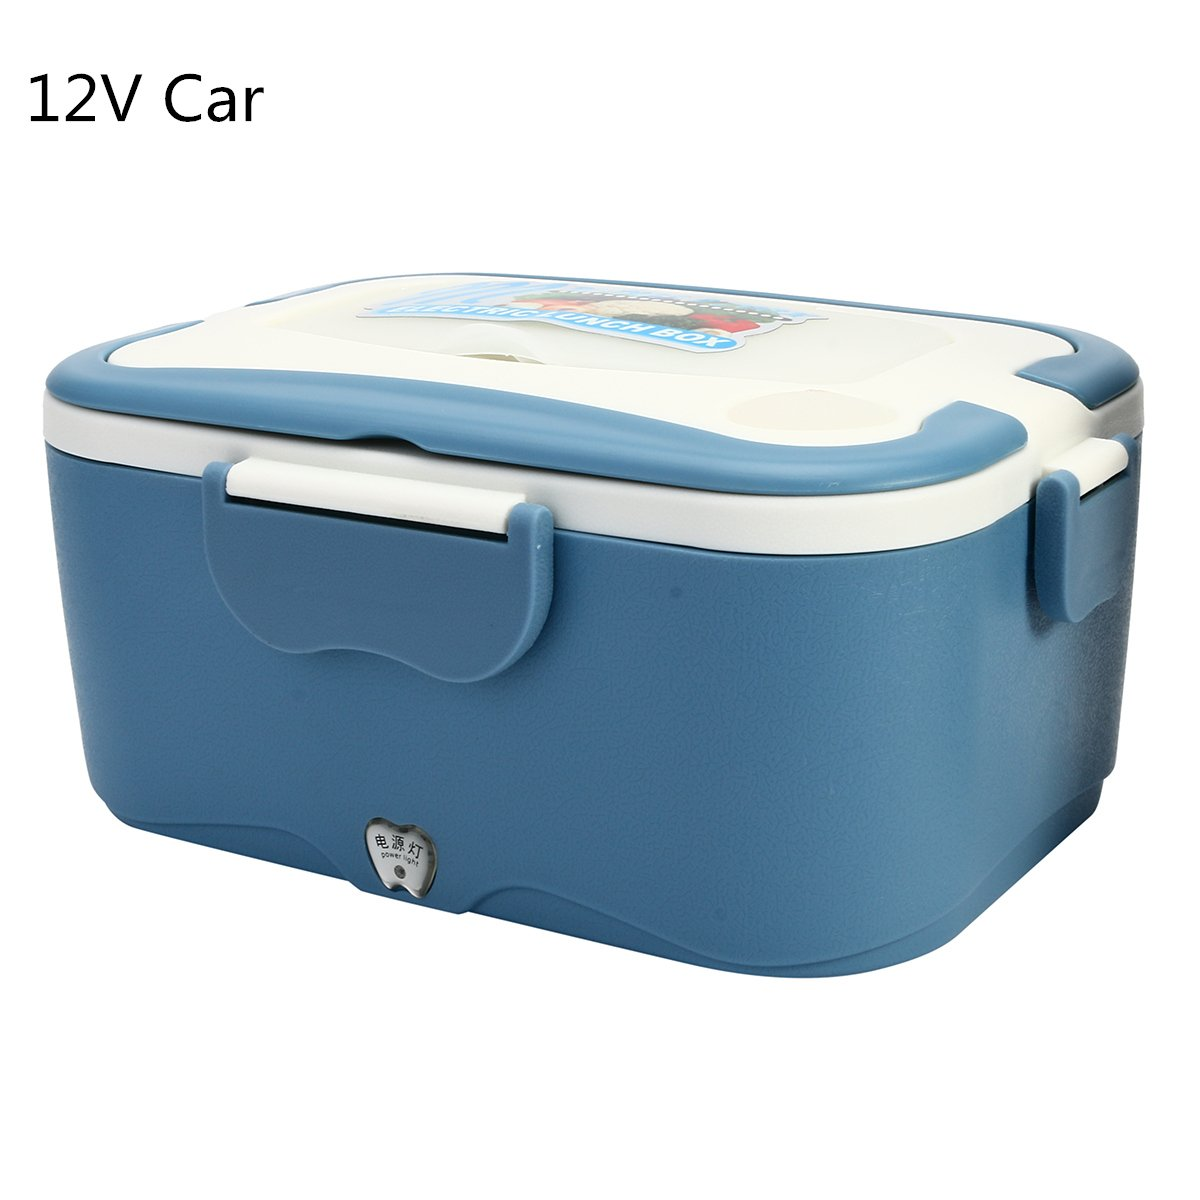 1.5L 12V/24V Car Electric Lunch Box Outdoor Traveling Meal Heater Truck Lunch Box - (Type: 24) - Car Electronics - Car Electronic Gadgets Exinnos